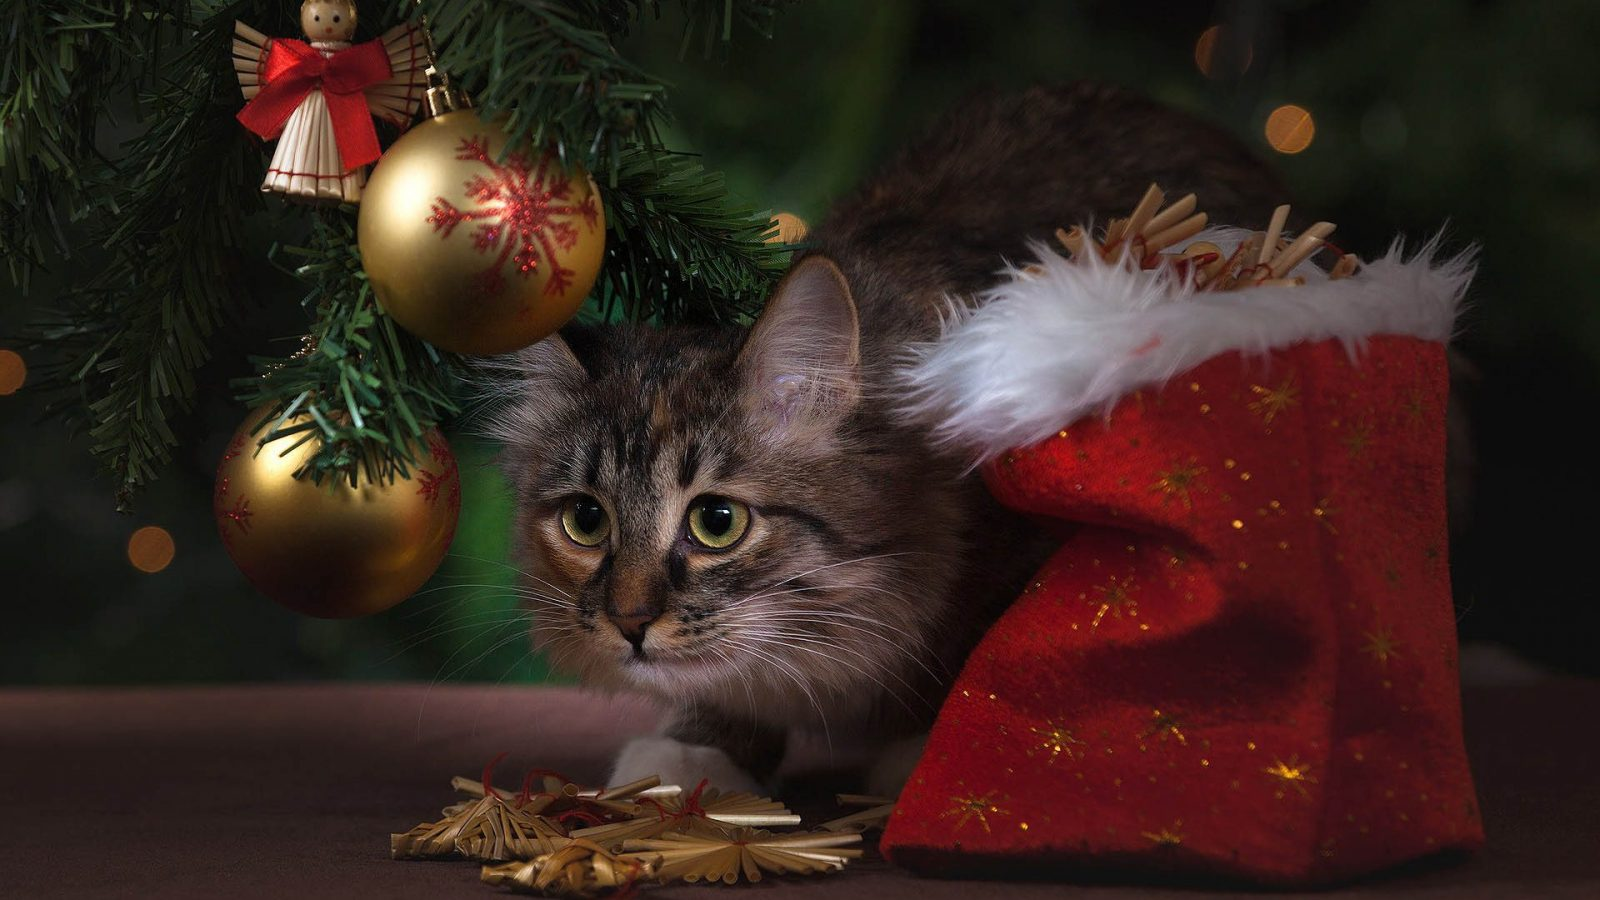 Christmas tree with cat